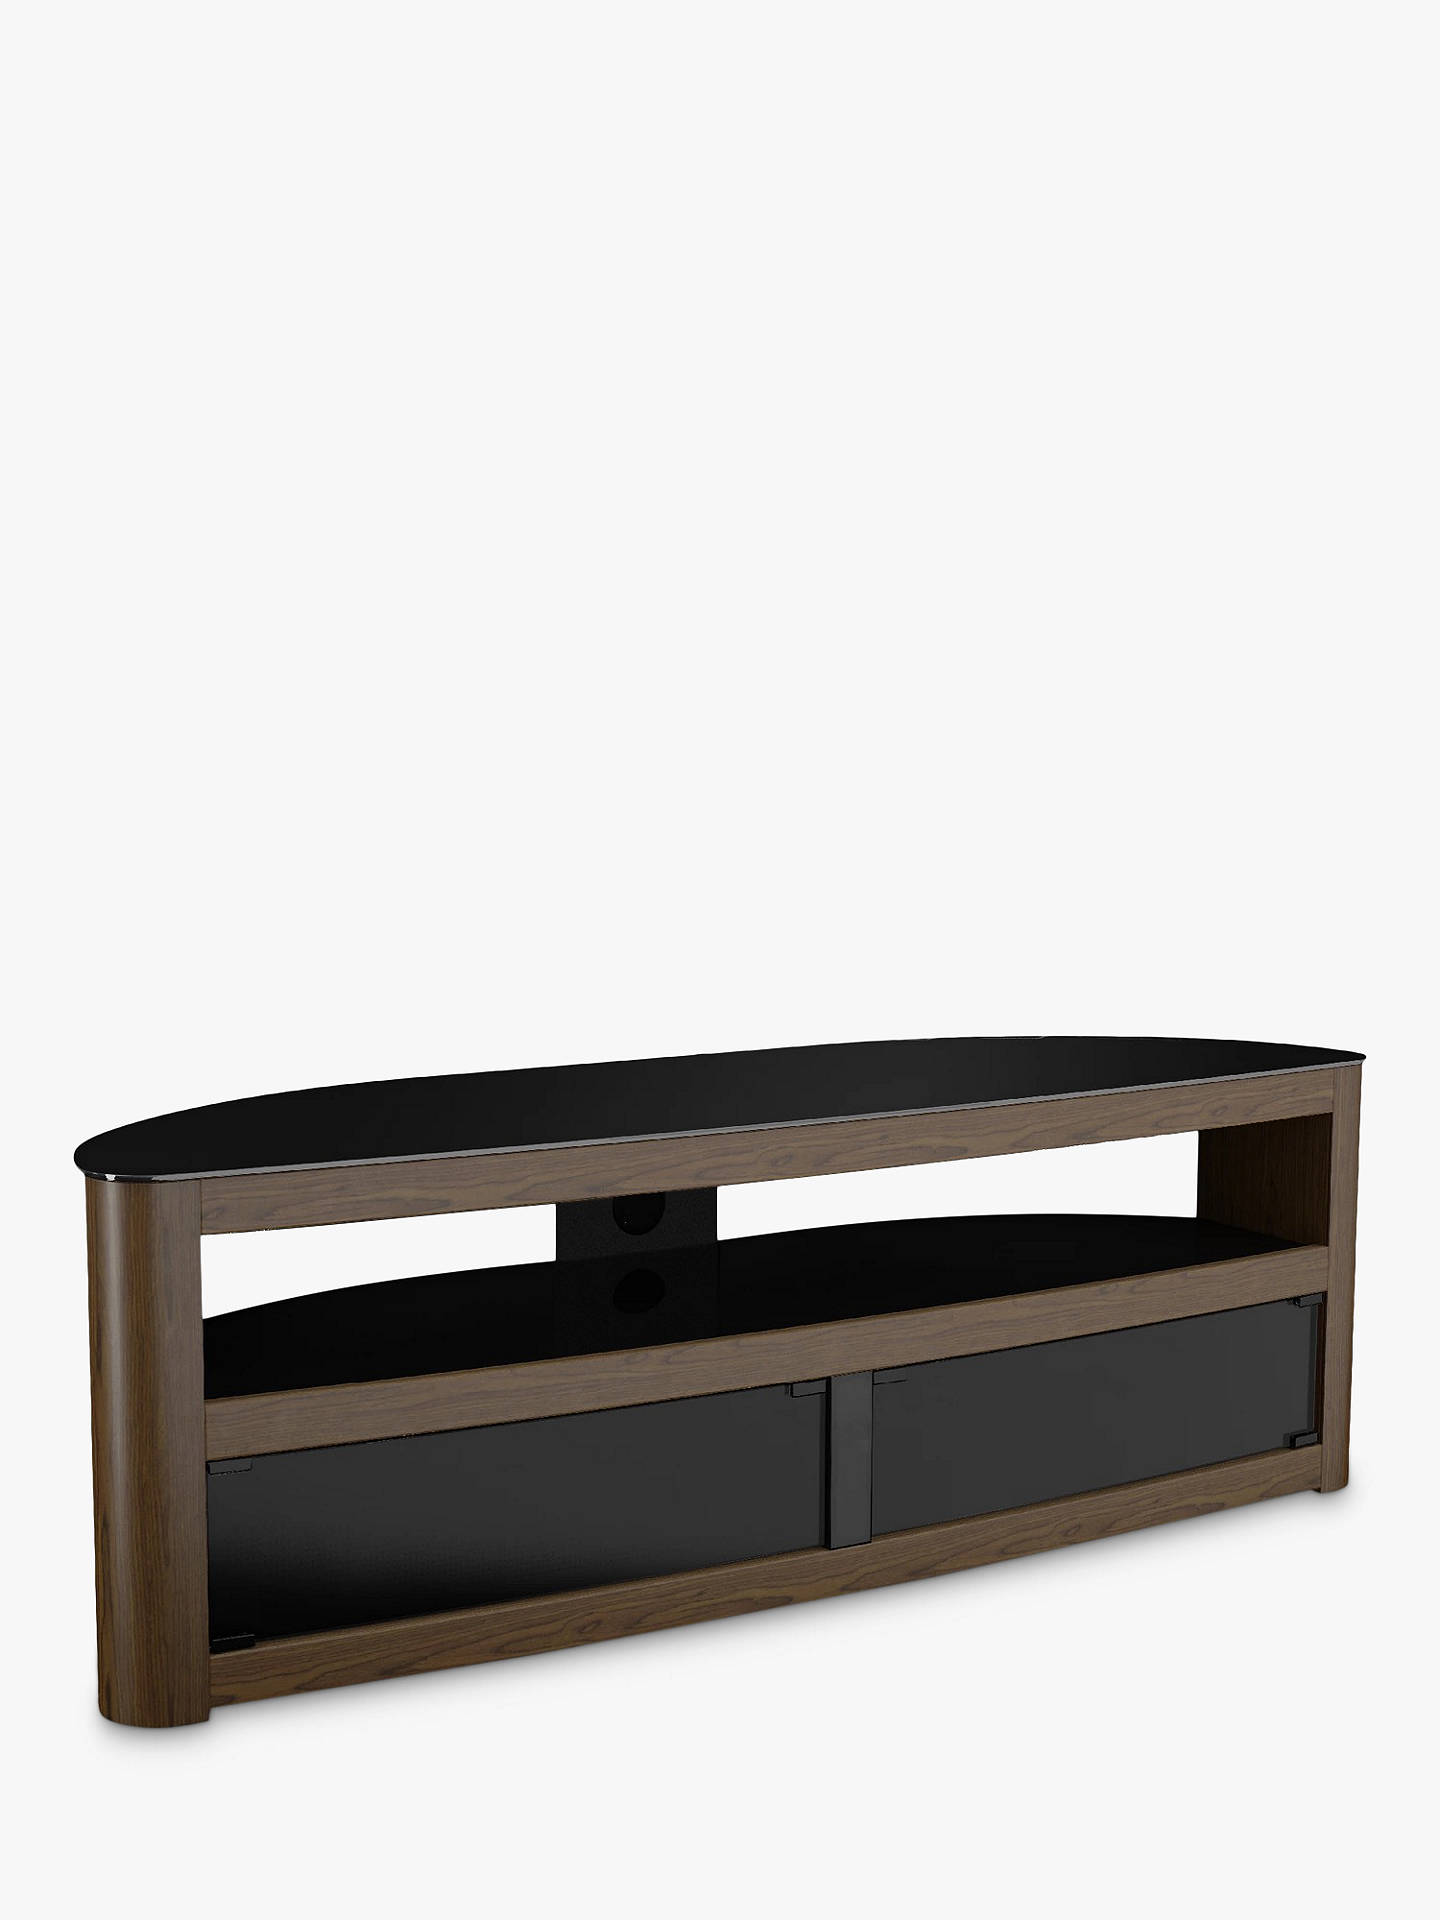 "Buy AVF Affinity Premium Burghley 1500 TV Stand For TVs Up To 70"", Walnut Online at johnlewis.com"